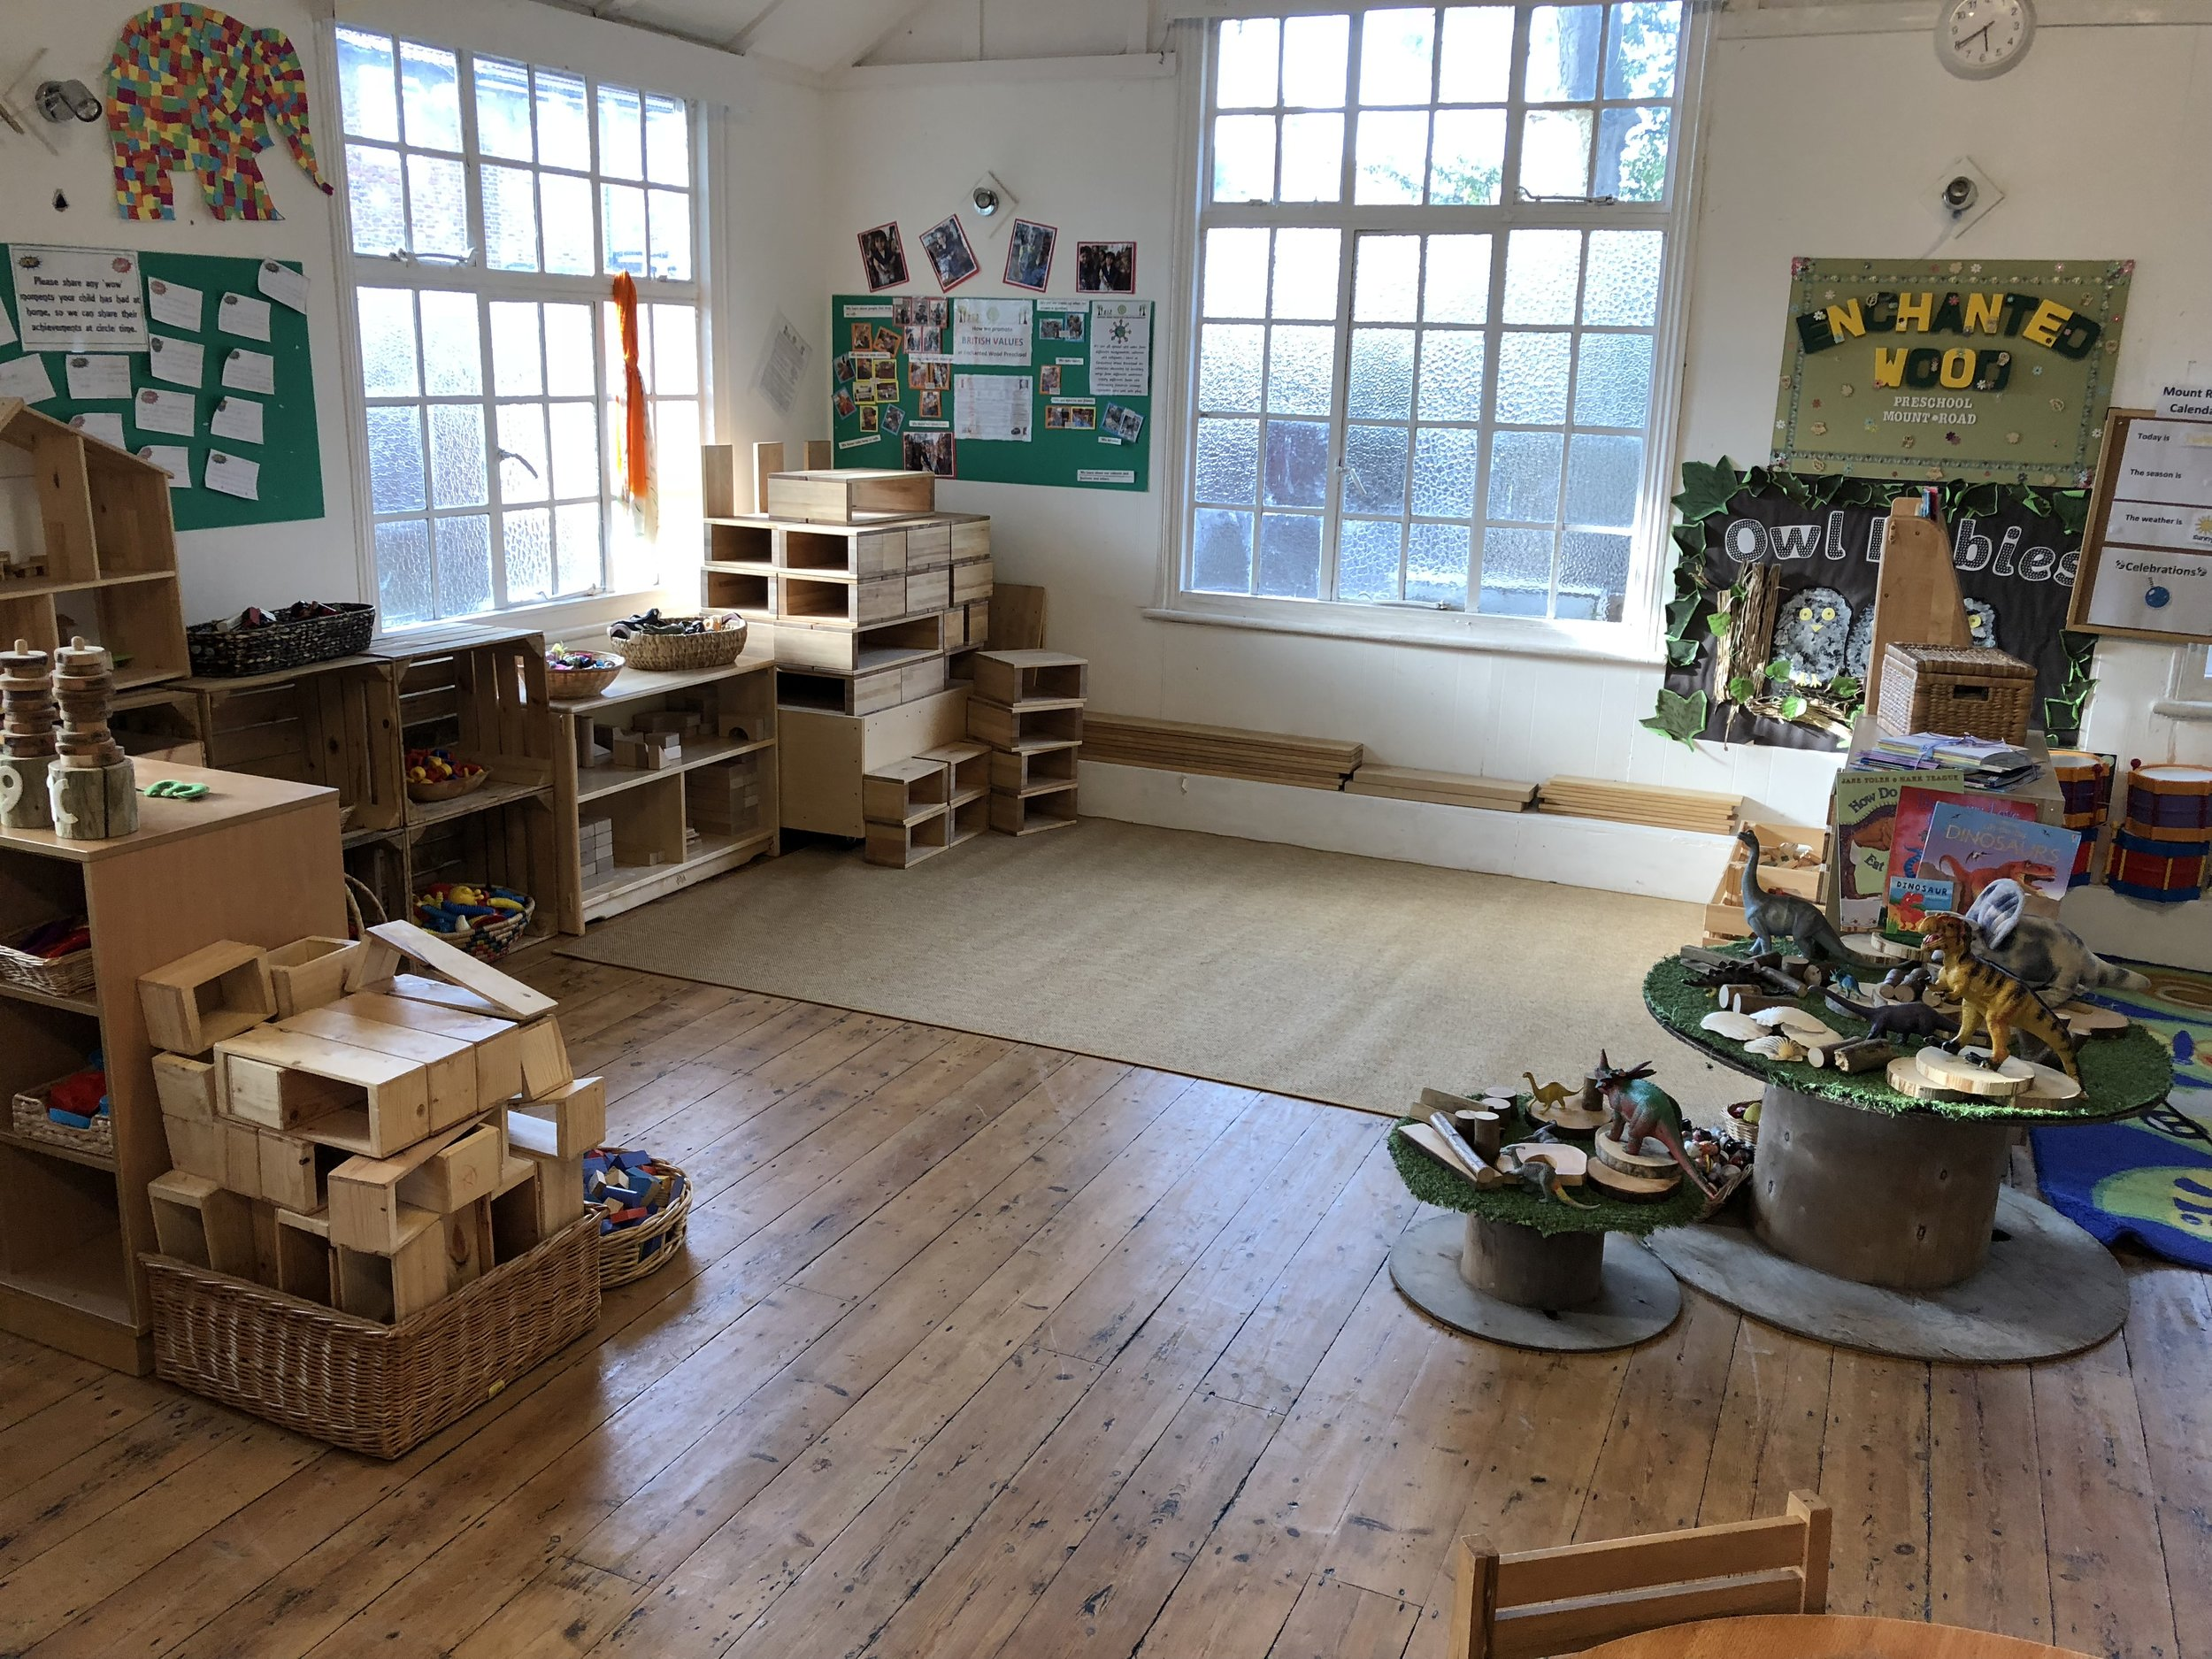 Mount Road, Bexleyheath - Term time only preschool - (3-4 yr olds)